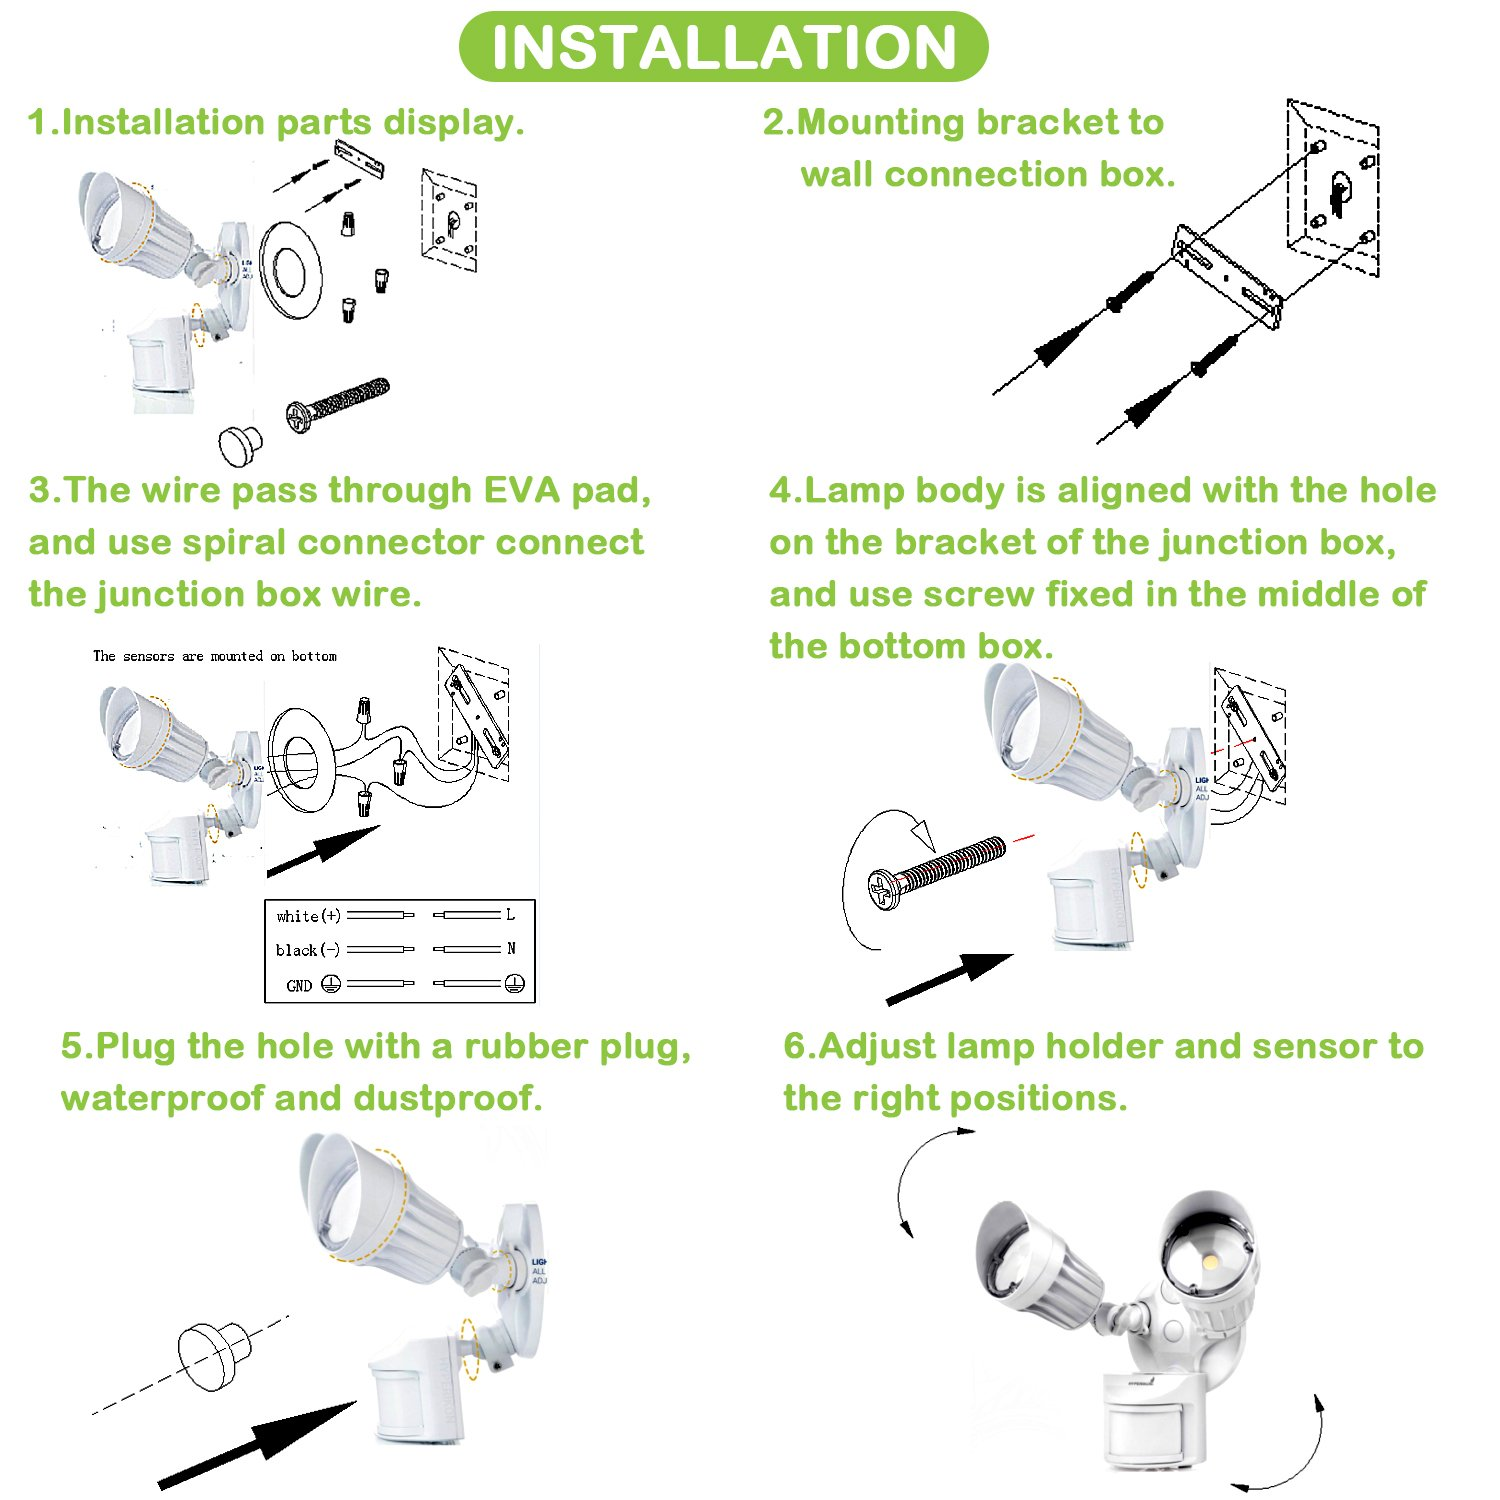 Hykolity 36w Pir Motion Detector Led Security Light Infrared Sensor Wiring Diagram Installing A With 3600lm Outdoor Wall Mount